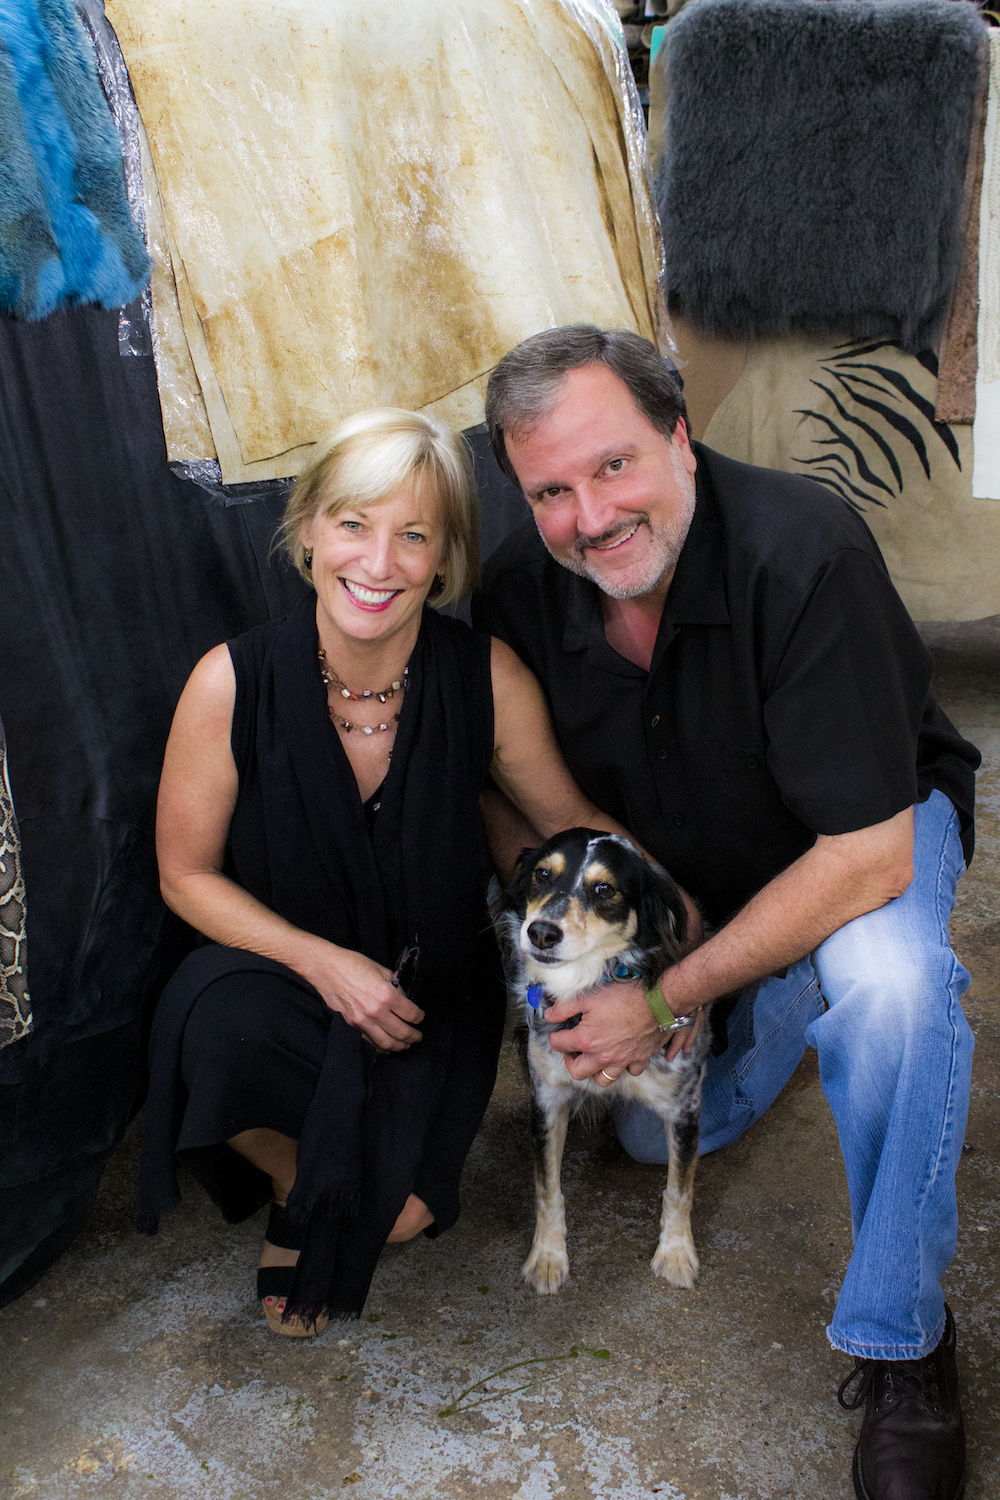 Greg & Lois Hochhauser and their pet Izzy